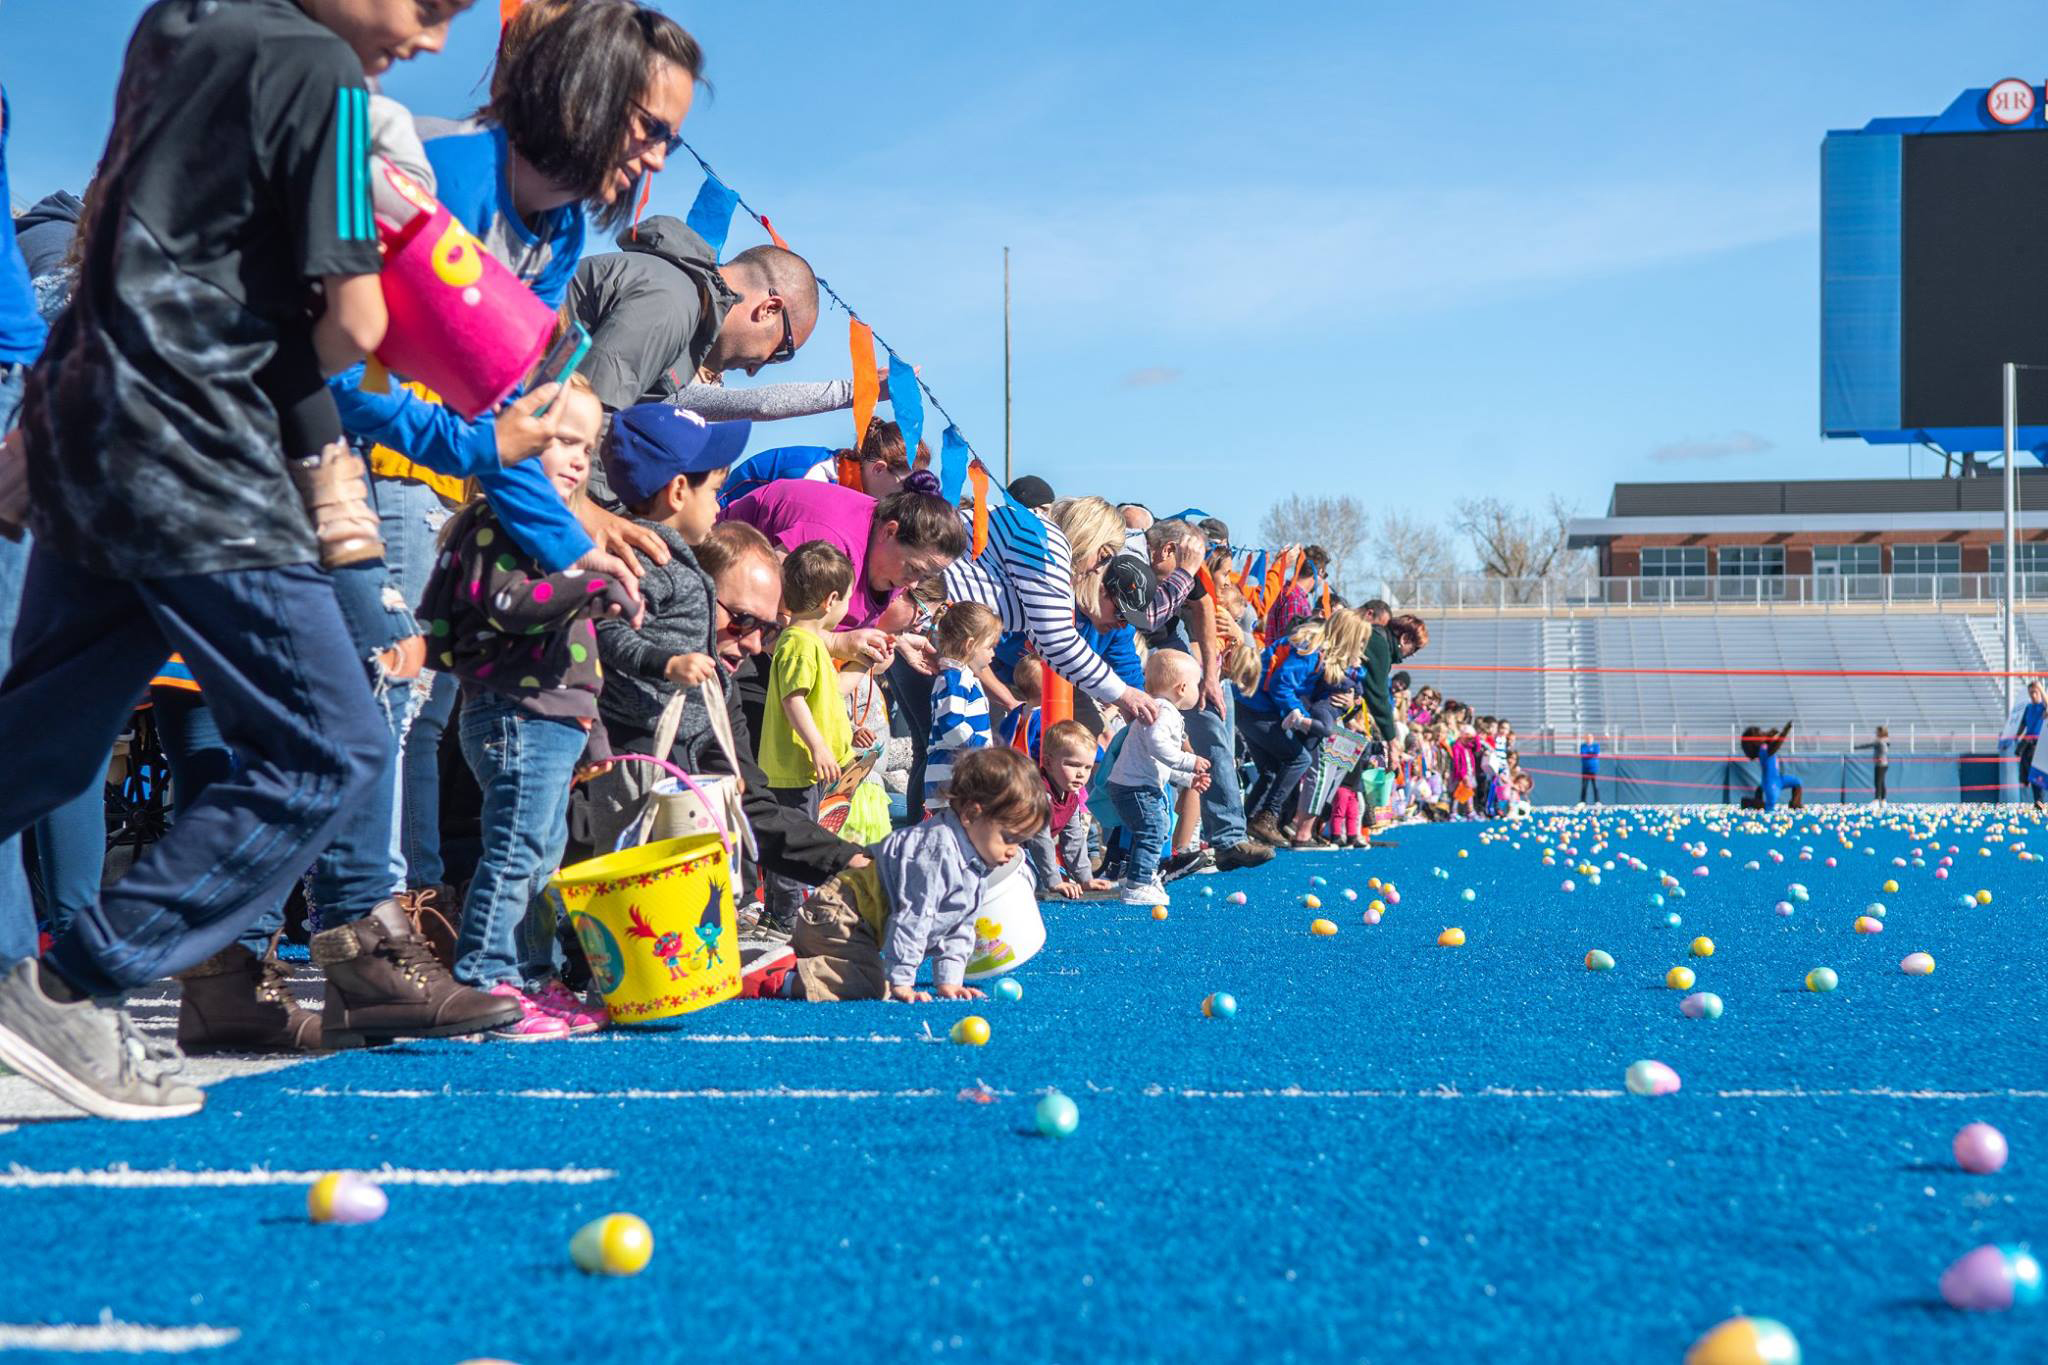 Boise State alumni and friends participating in the Easter Egg Hunt on The Blue